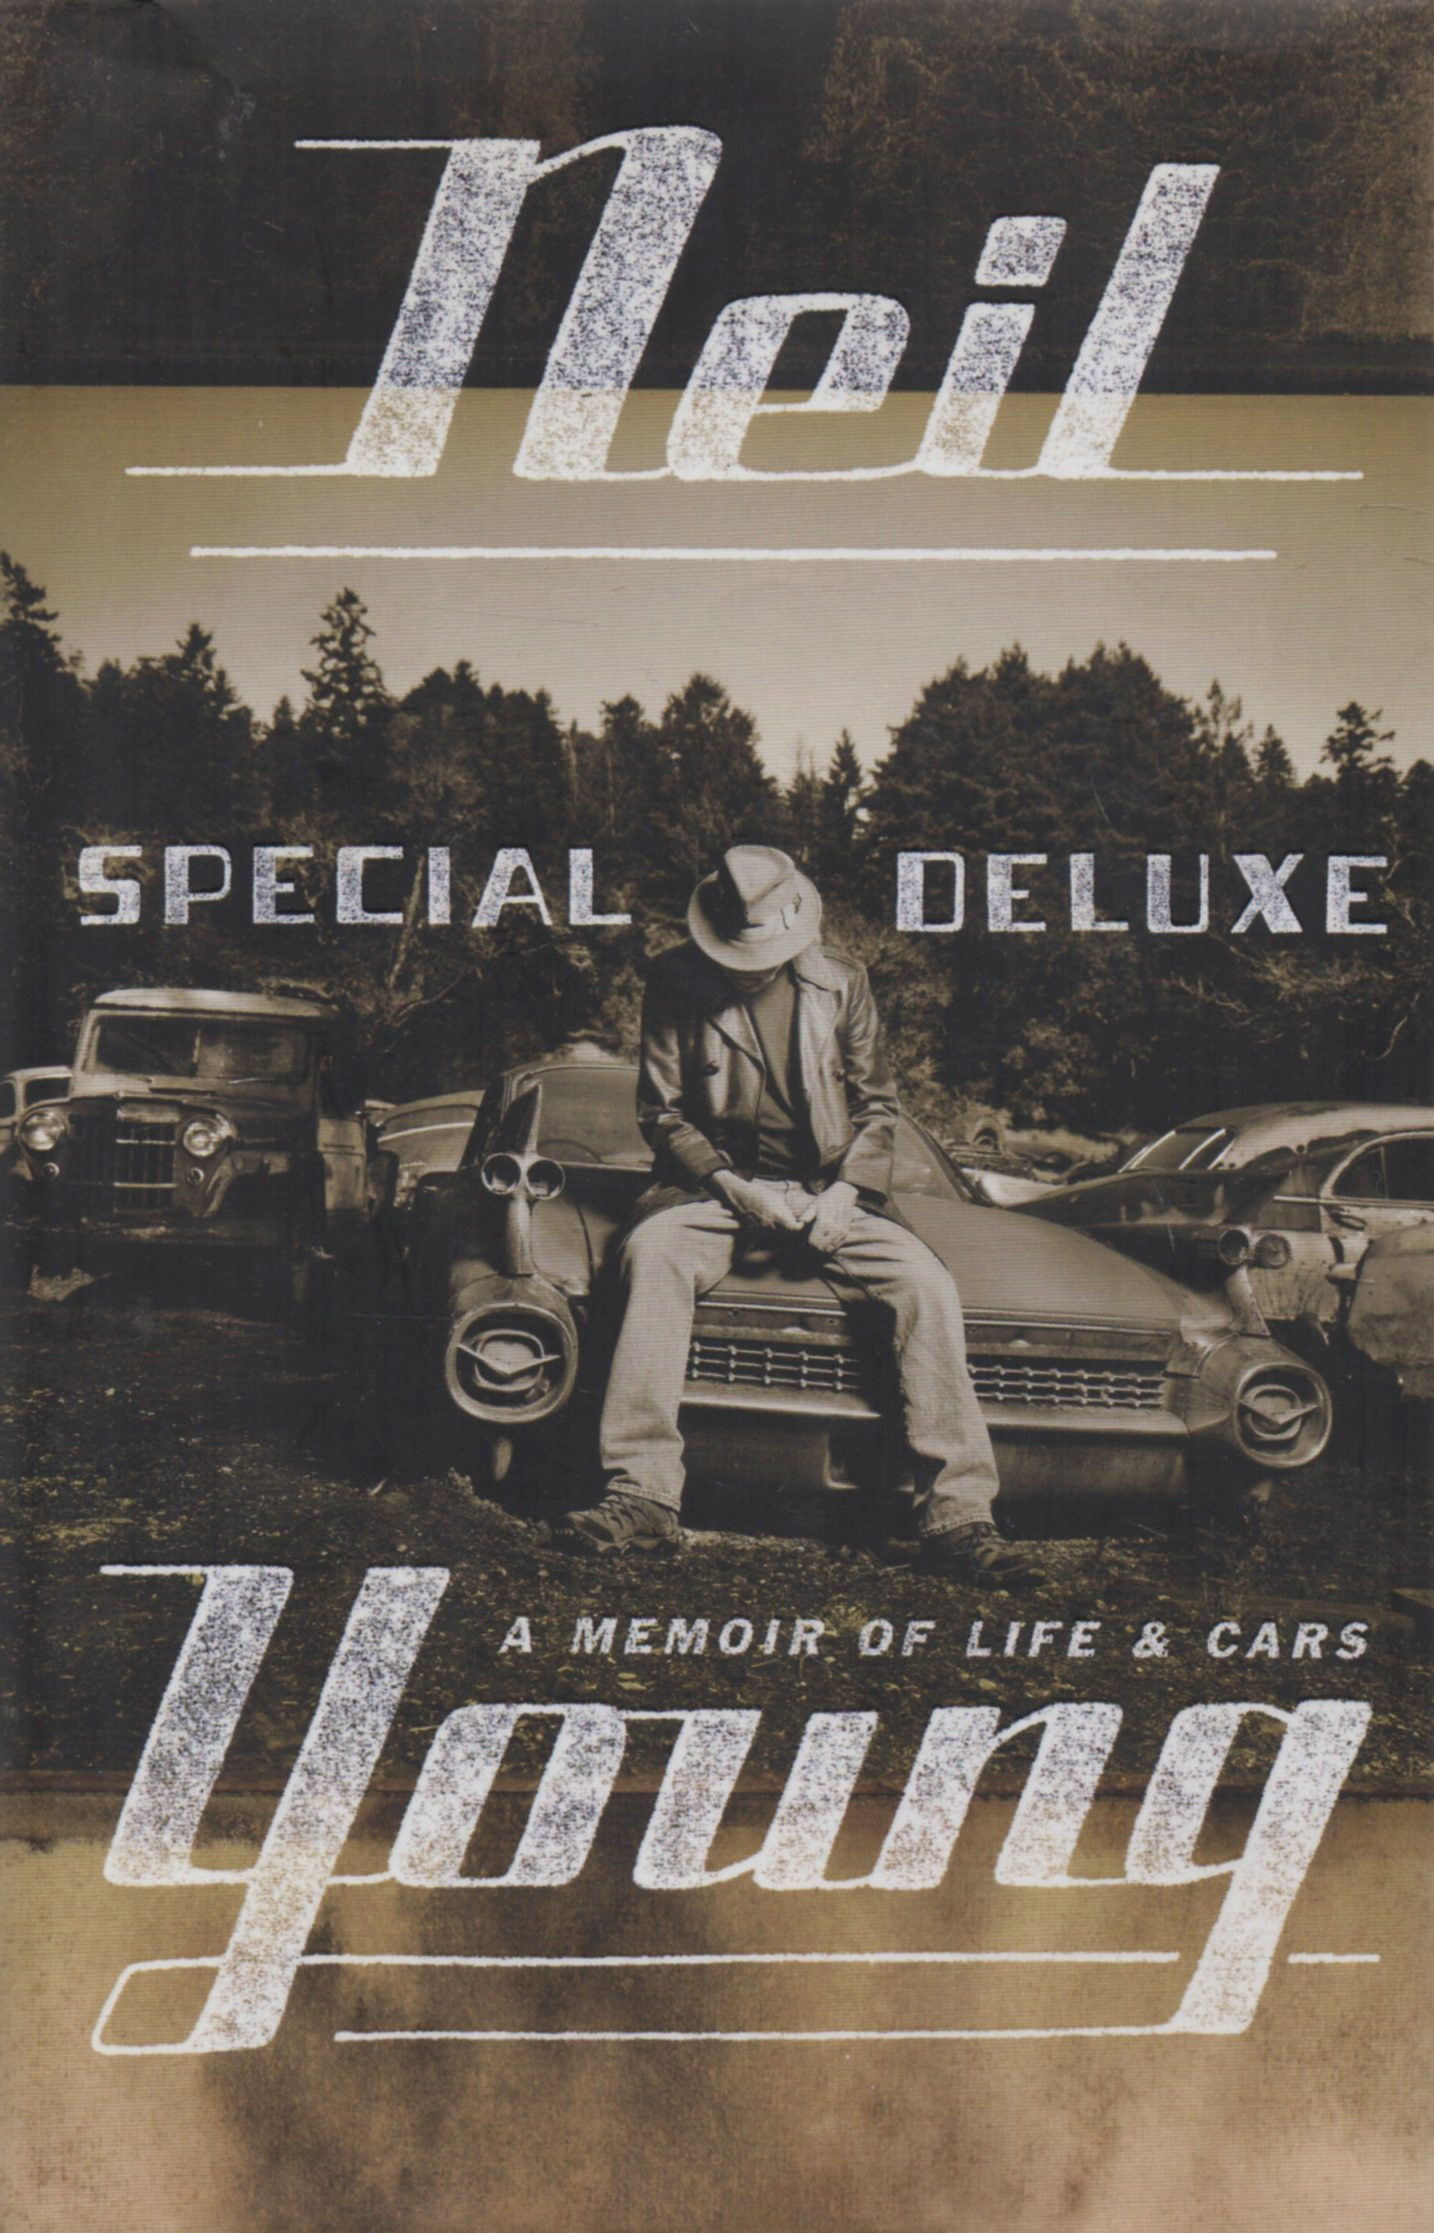 YOUNG, NEIL - Special Deluxe  A Memoir of Life and Cars